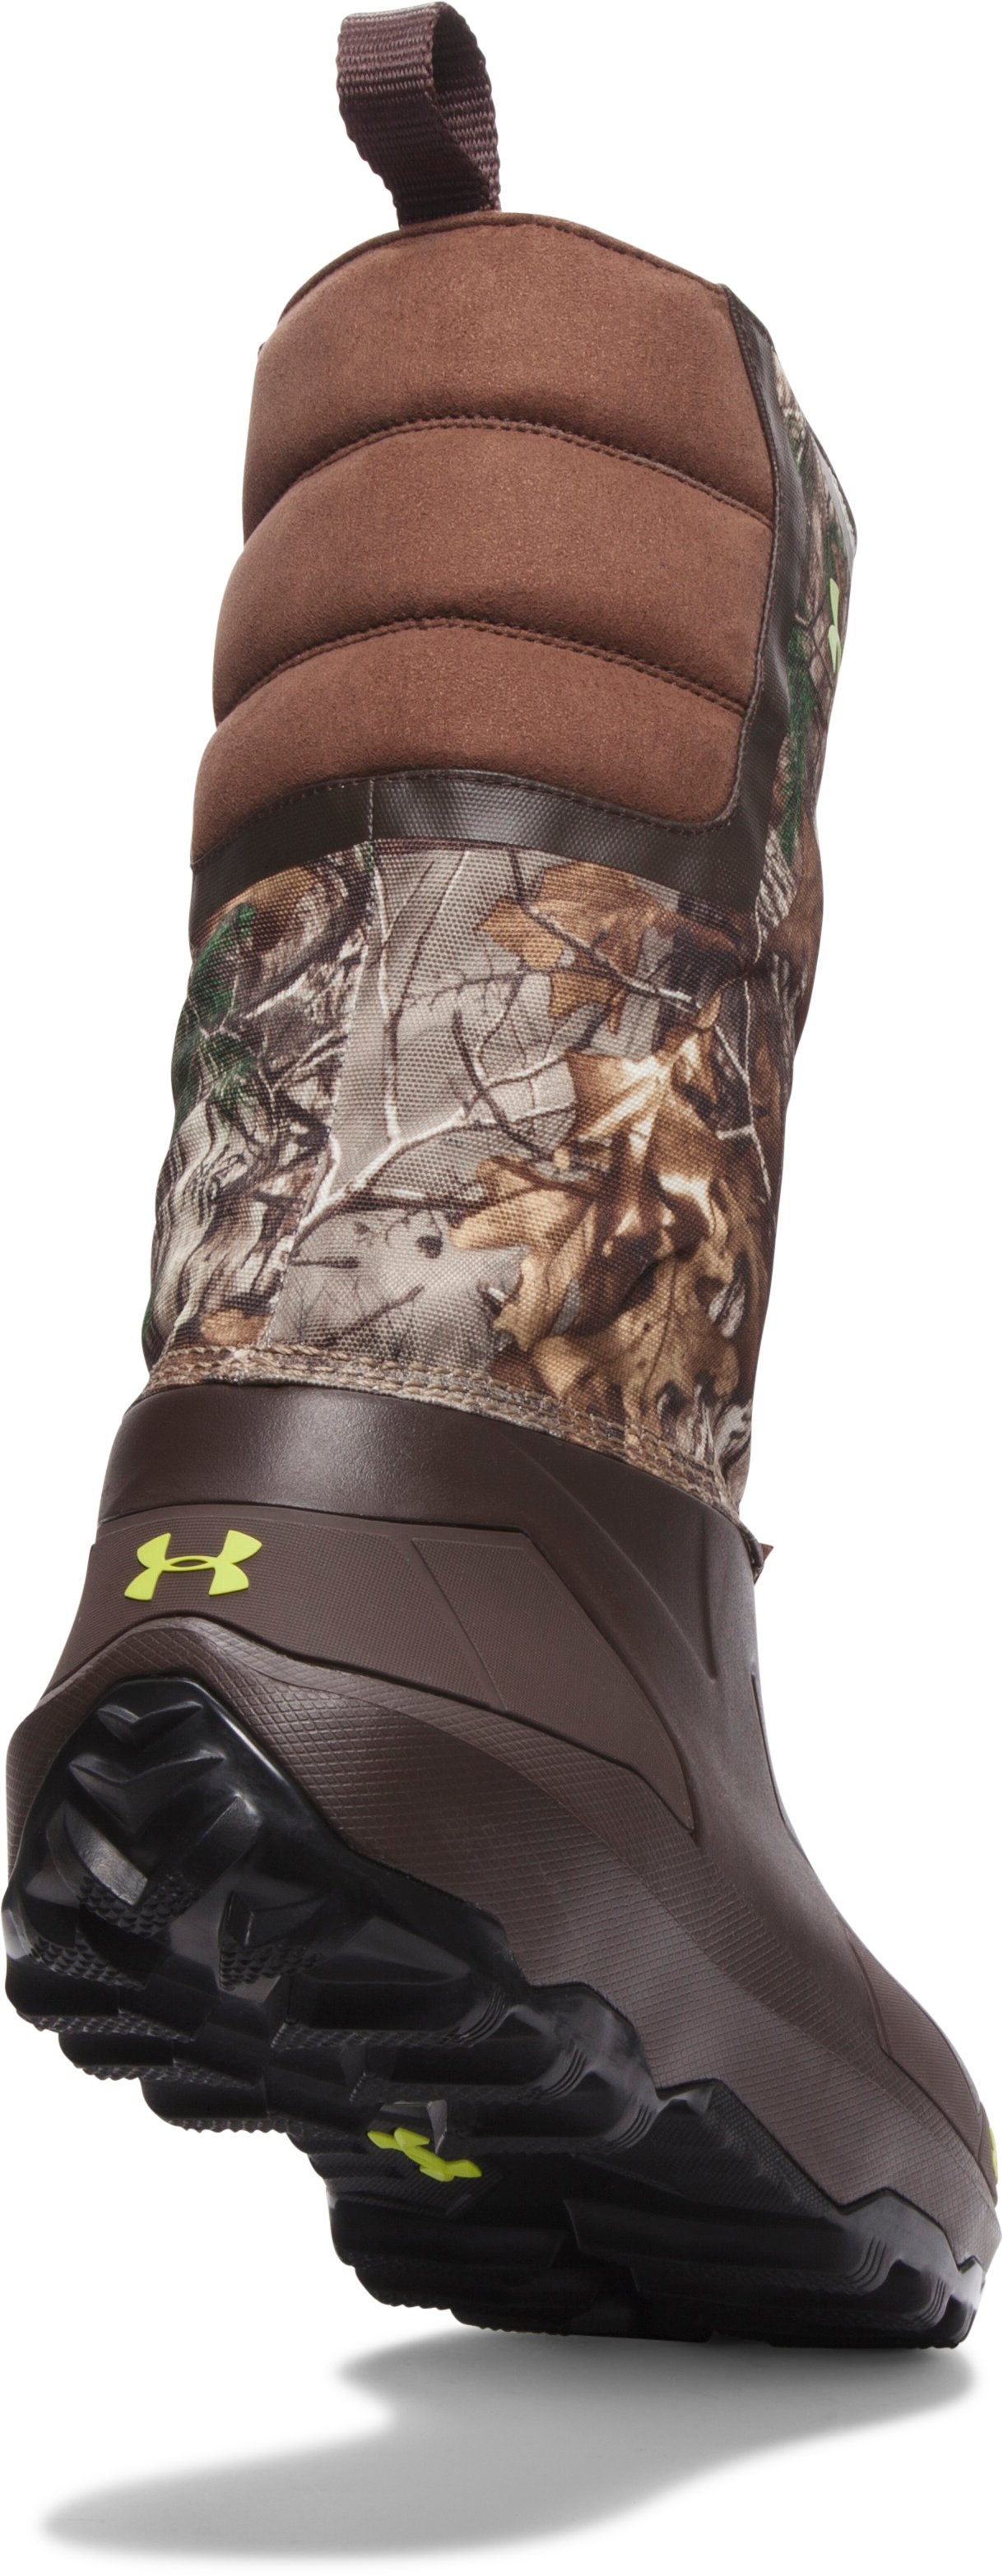 Men's UA Ridge Reaper® PAC 1200 Hunting Boots, REALTREE AP-XTRA